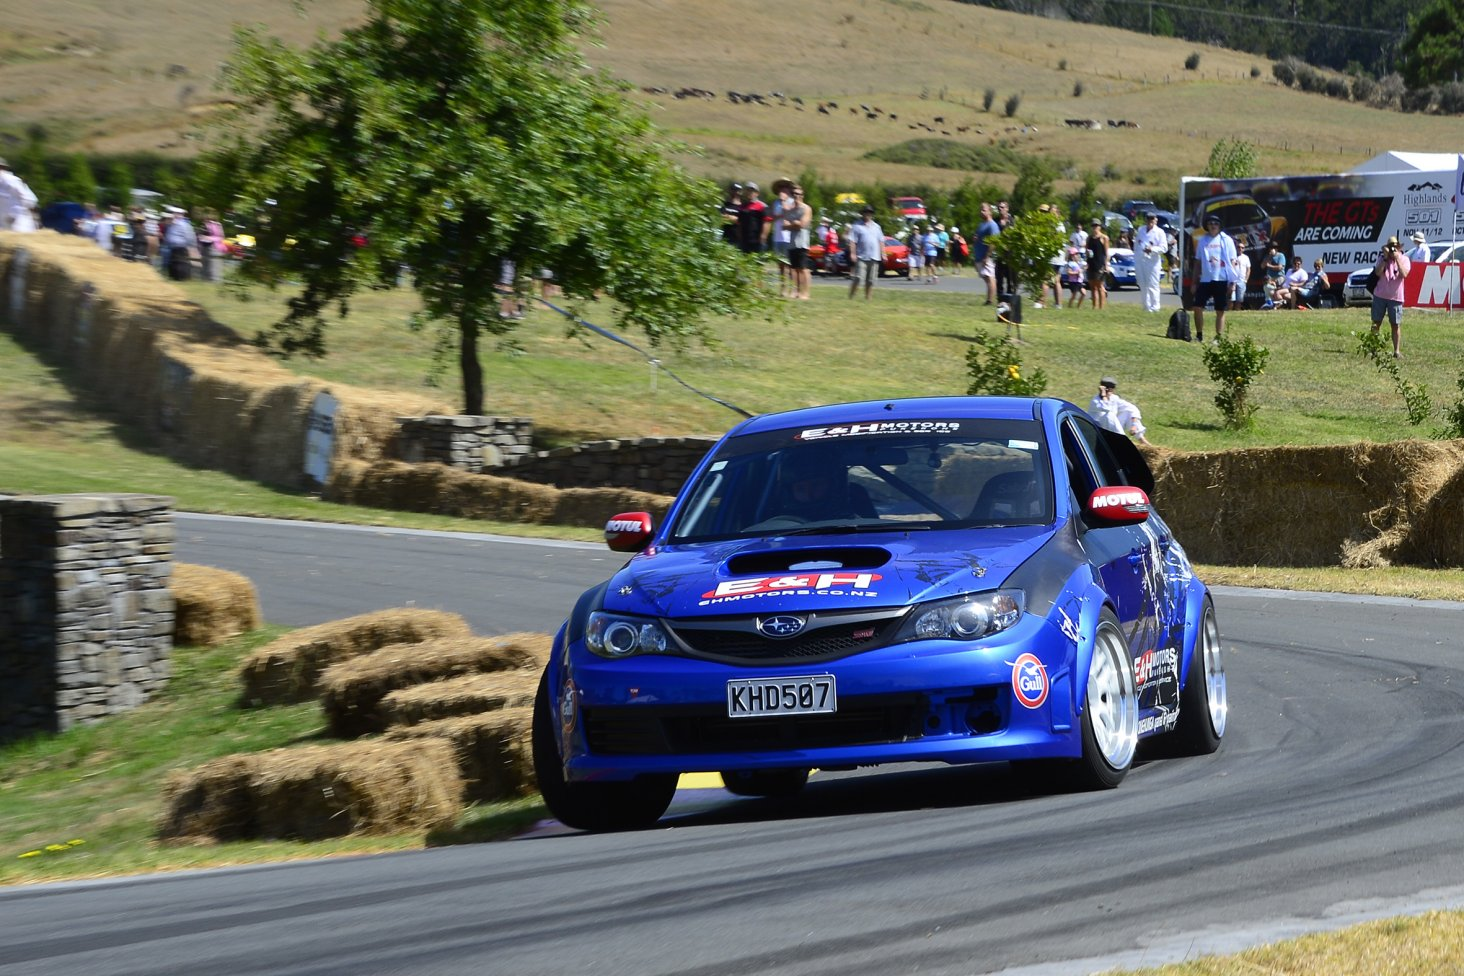 Subaru WRX STi driver Carl Ruiterman on his way to seventh in the Leadfoot Festival's Top Ten Shootout. PHOTO: GEOFF RIDDER.